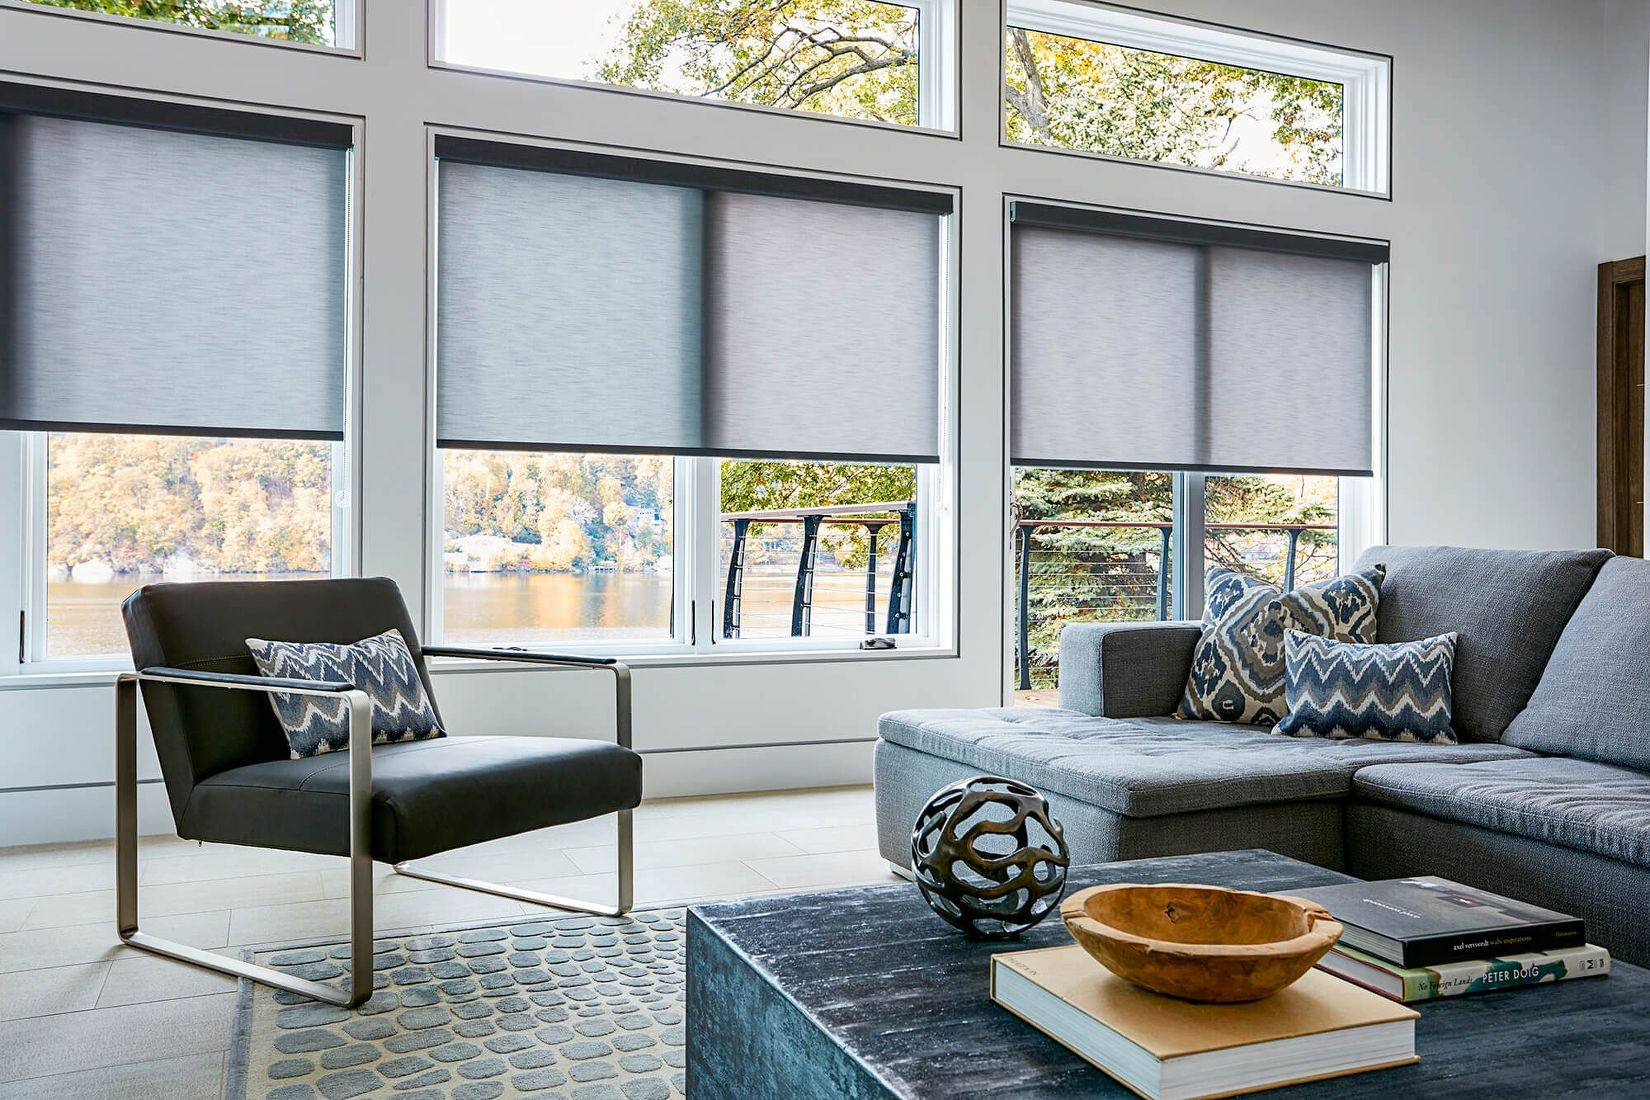 Translucent roller shades